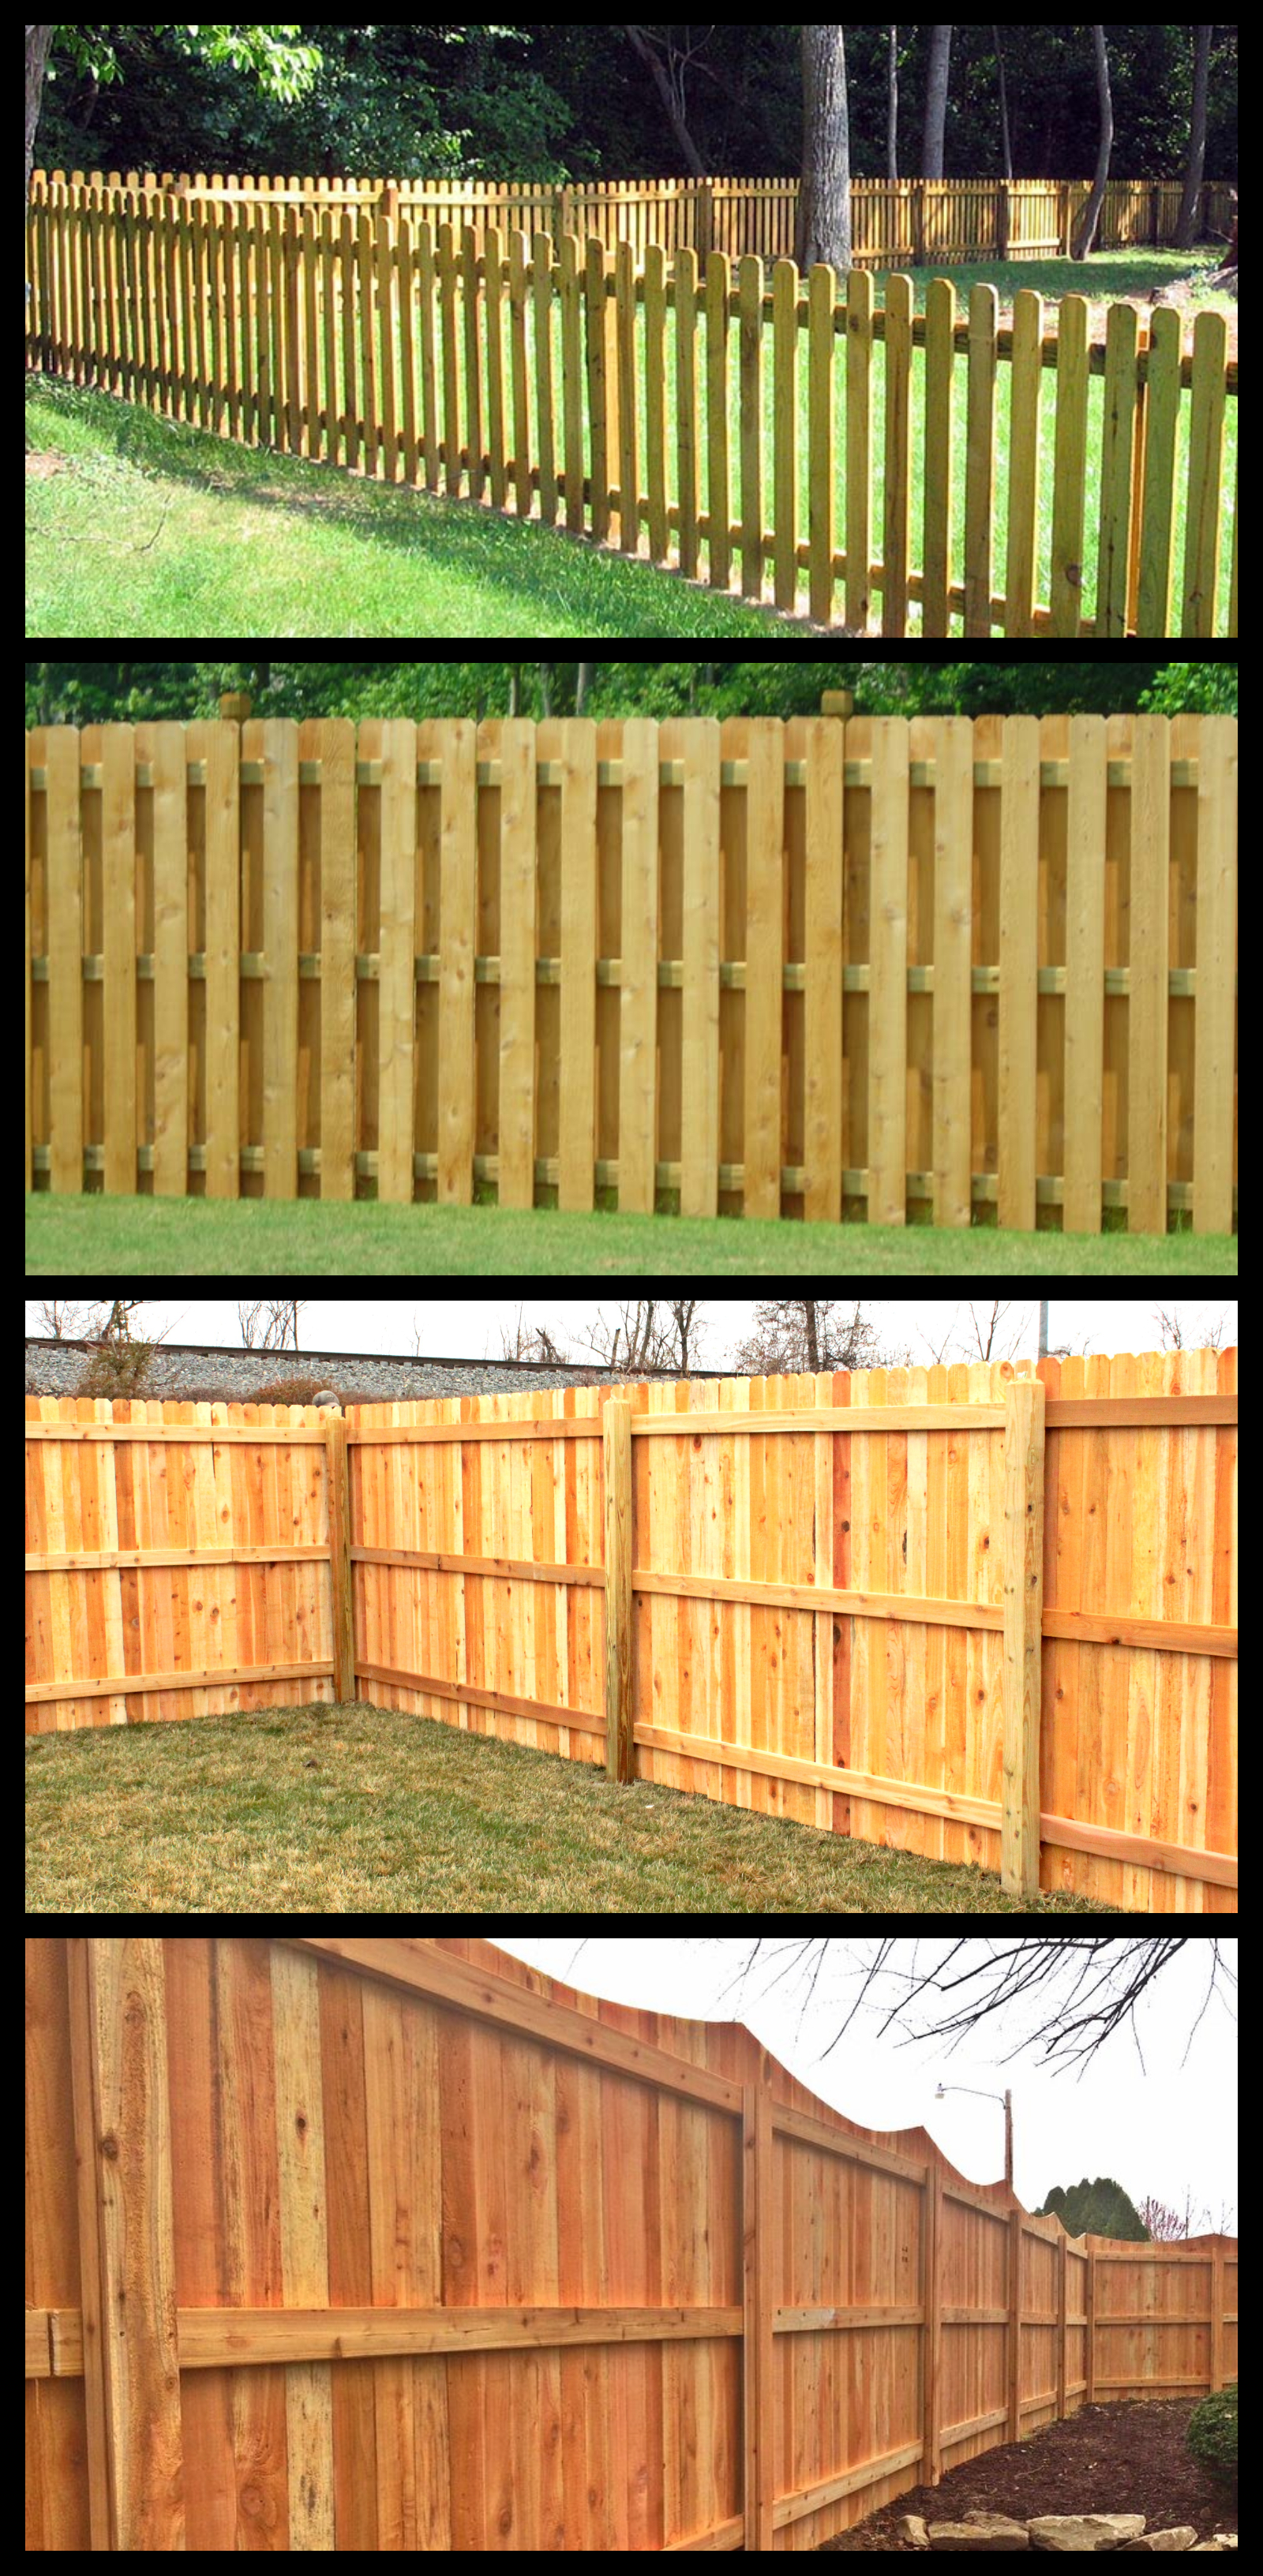 Wood - Wood fencing comes in a variety of forms and finishes. From simple to creative, the three main benefits of using wood fencing are its aesthetic value, its privacy and its longevity.Picket Fencing creates security while allowing some breathing room. This shorter fence allows for conversation and site-lines.Shadowbox Fencing gives increased durability and privacy while still permitting air and light to flow through.Privacy Fencing provides increased home value and privacy. It reduces street and environmental noise and gives a barrier to the elements. Privacy fencing comes in a variety of traditional and ornamental designs and heights.